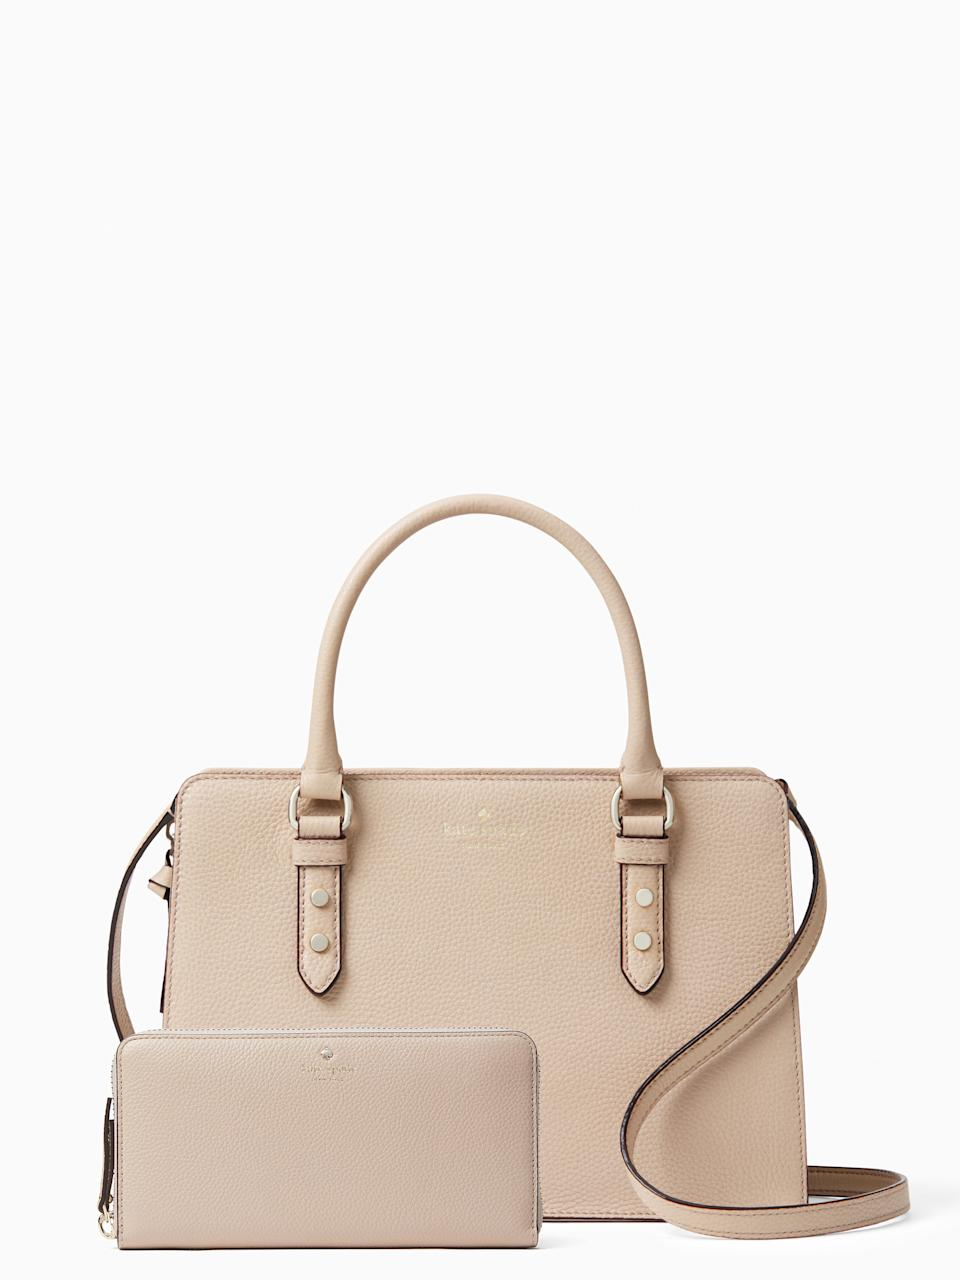 Save with bundles - The Mulbery Lise and Larchement Avenue Neda - $159 at Kate Spade using code MAKEITTWO.